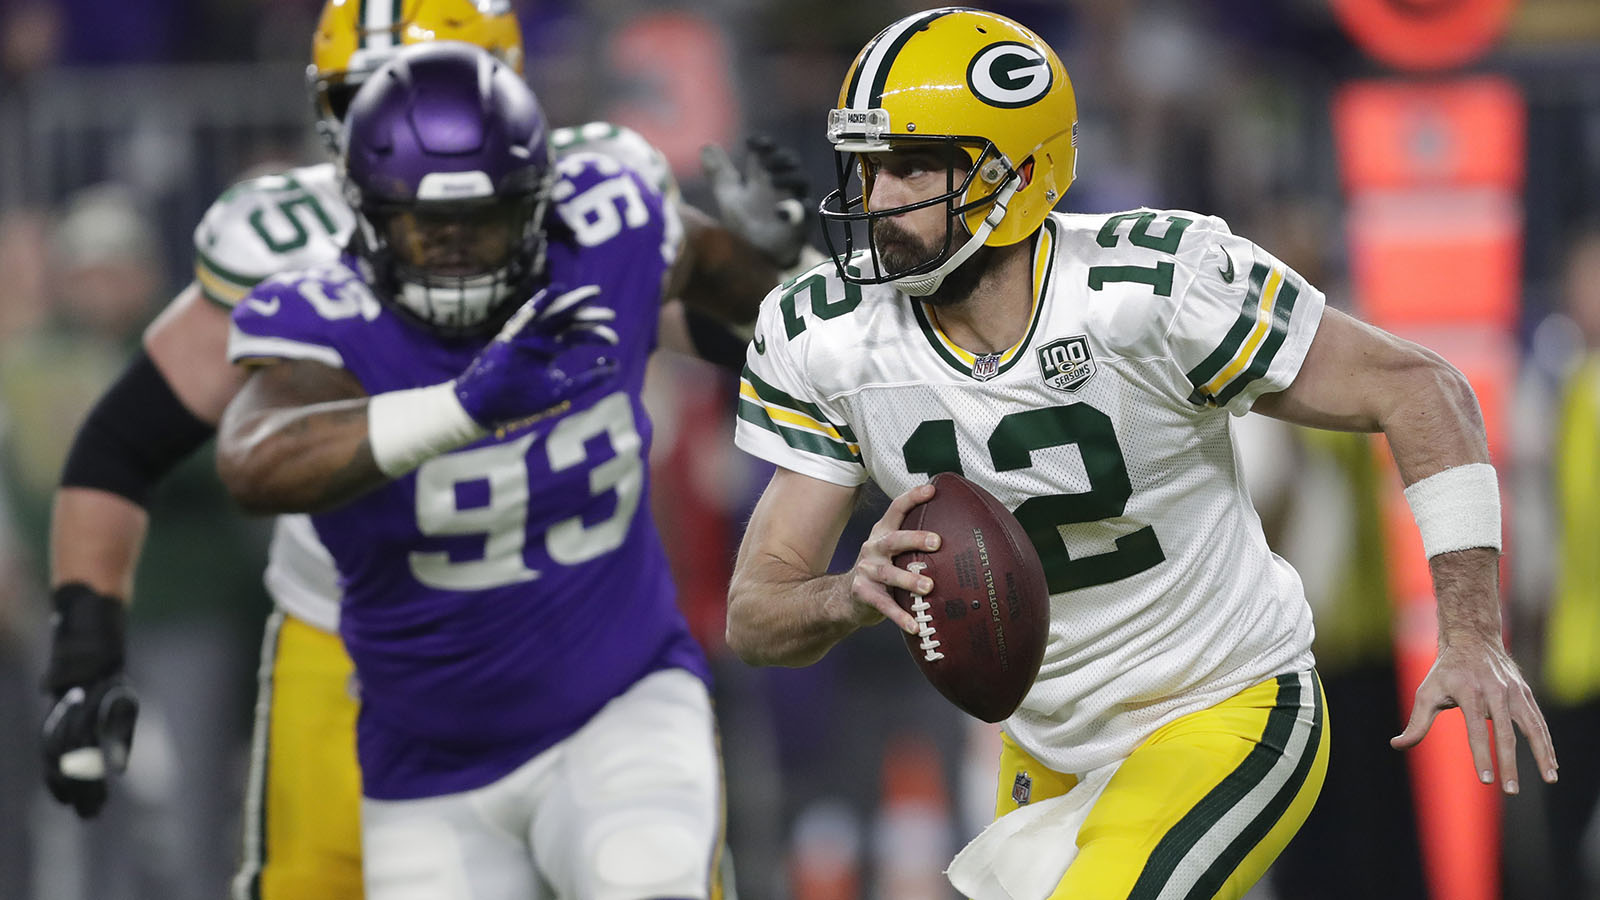 Nov 25, 2018; Minneapolis, MN, USA; Green Bay Packers quarterback Aaron Rodgers (12) runs with the ball as Minnesota Vikings' Sheldon Richardson (93) chases in the first quarter during at U.S. Bank Stadium. Mandatory Credit: Dan Powers via USA TODAY NETWORK